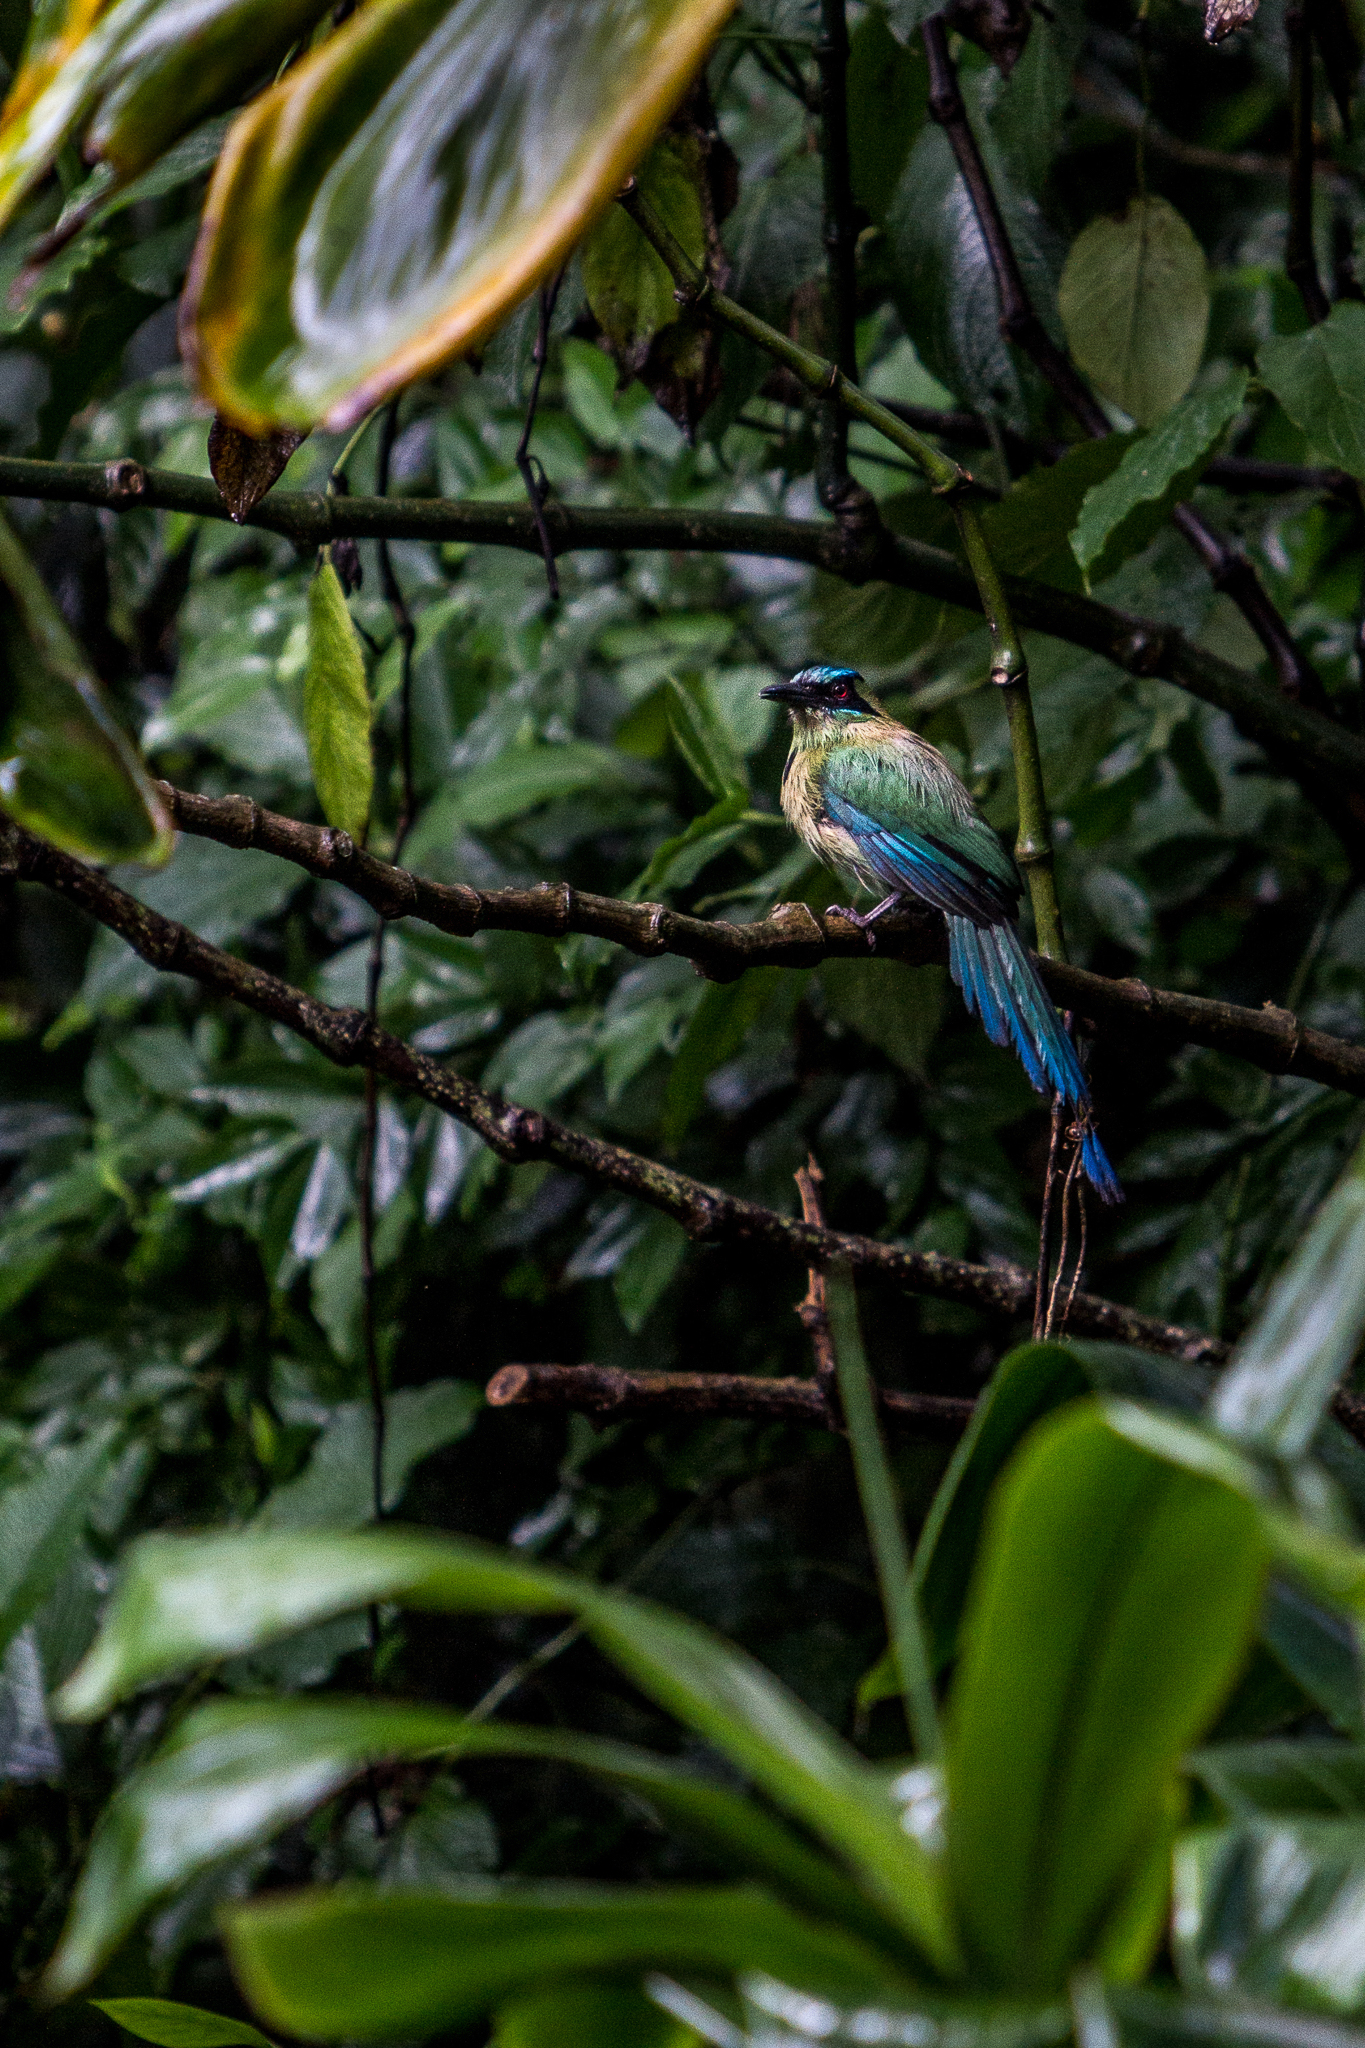 A blue-crowned motmot (Momotus momota) seeks shelter from the rain in the lower branches of a cloud forest tree near Xalapa, Veracruz.